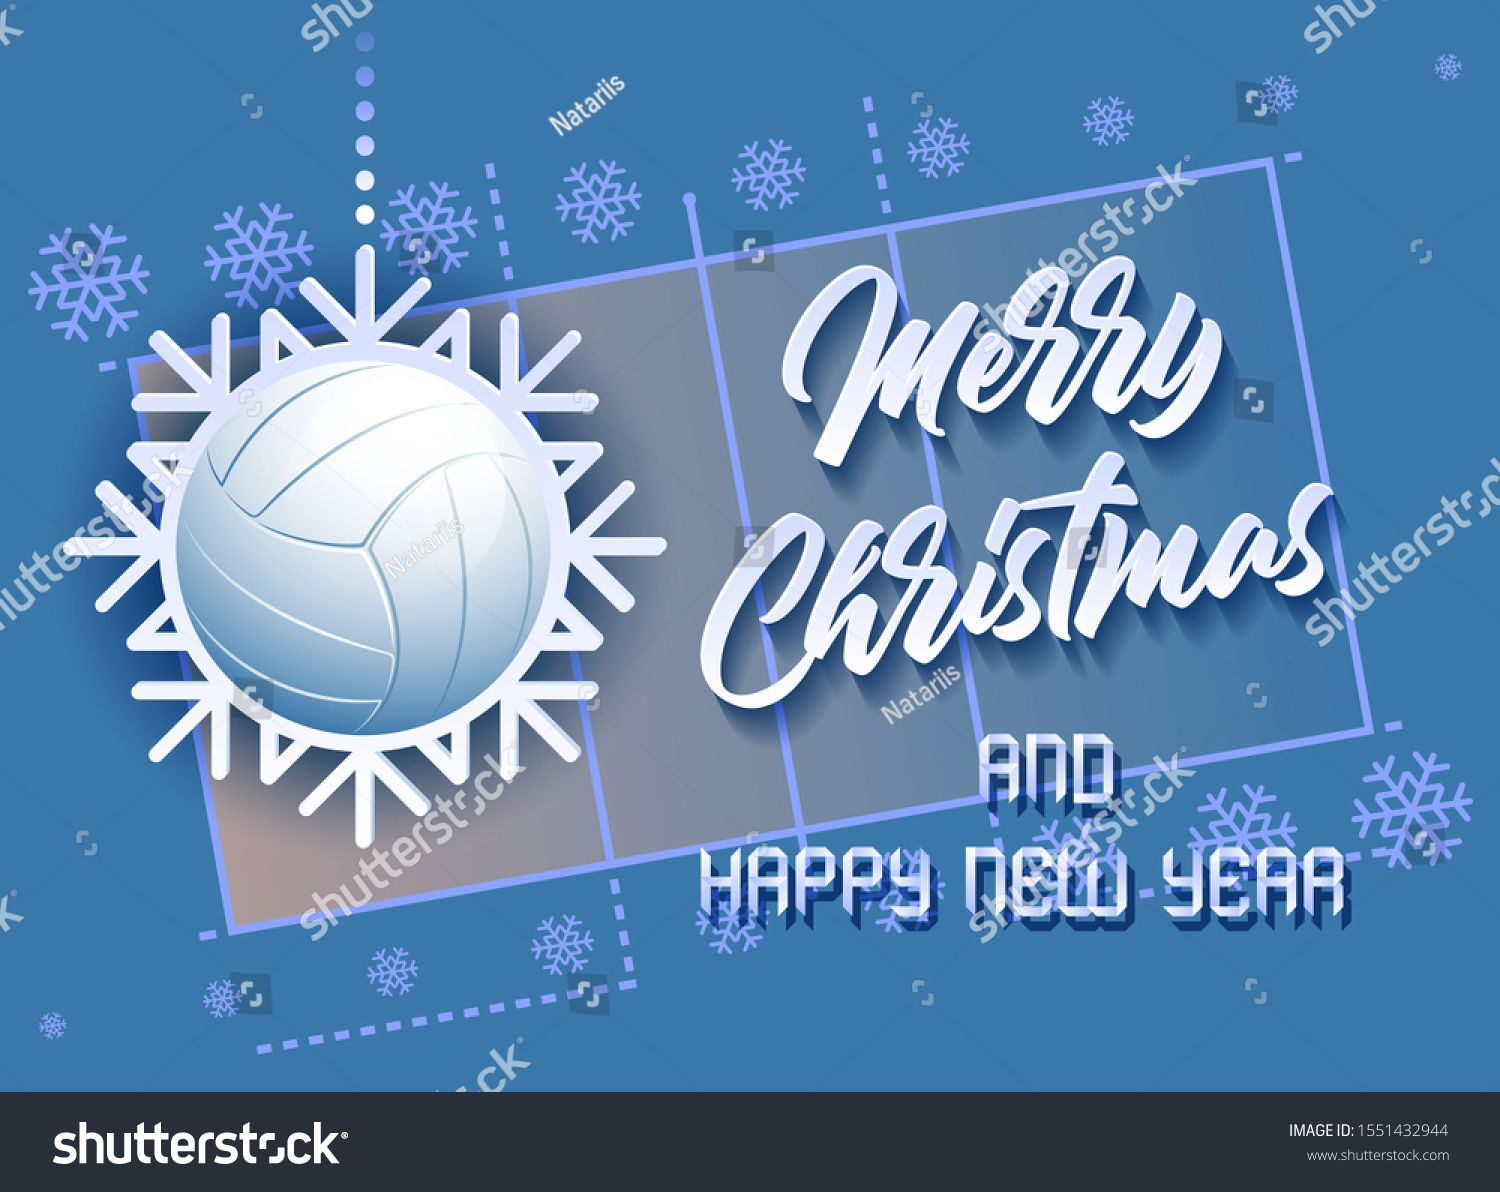 Merry Christmas And Happy New Year Sports Card With A Volleyball Ball As A Snowflake And A Volleyball Merry Christmas And Happy New Year Merry Merry Christmas